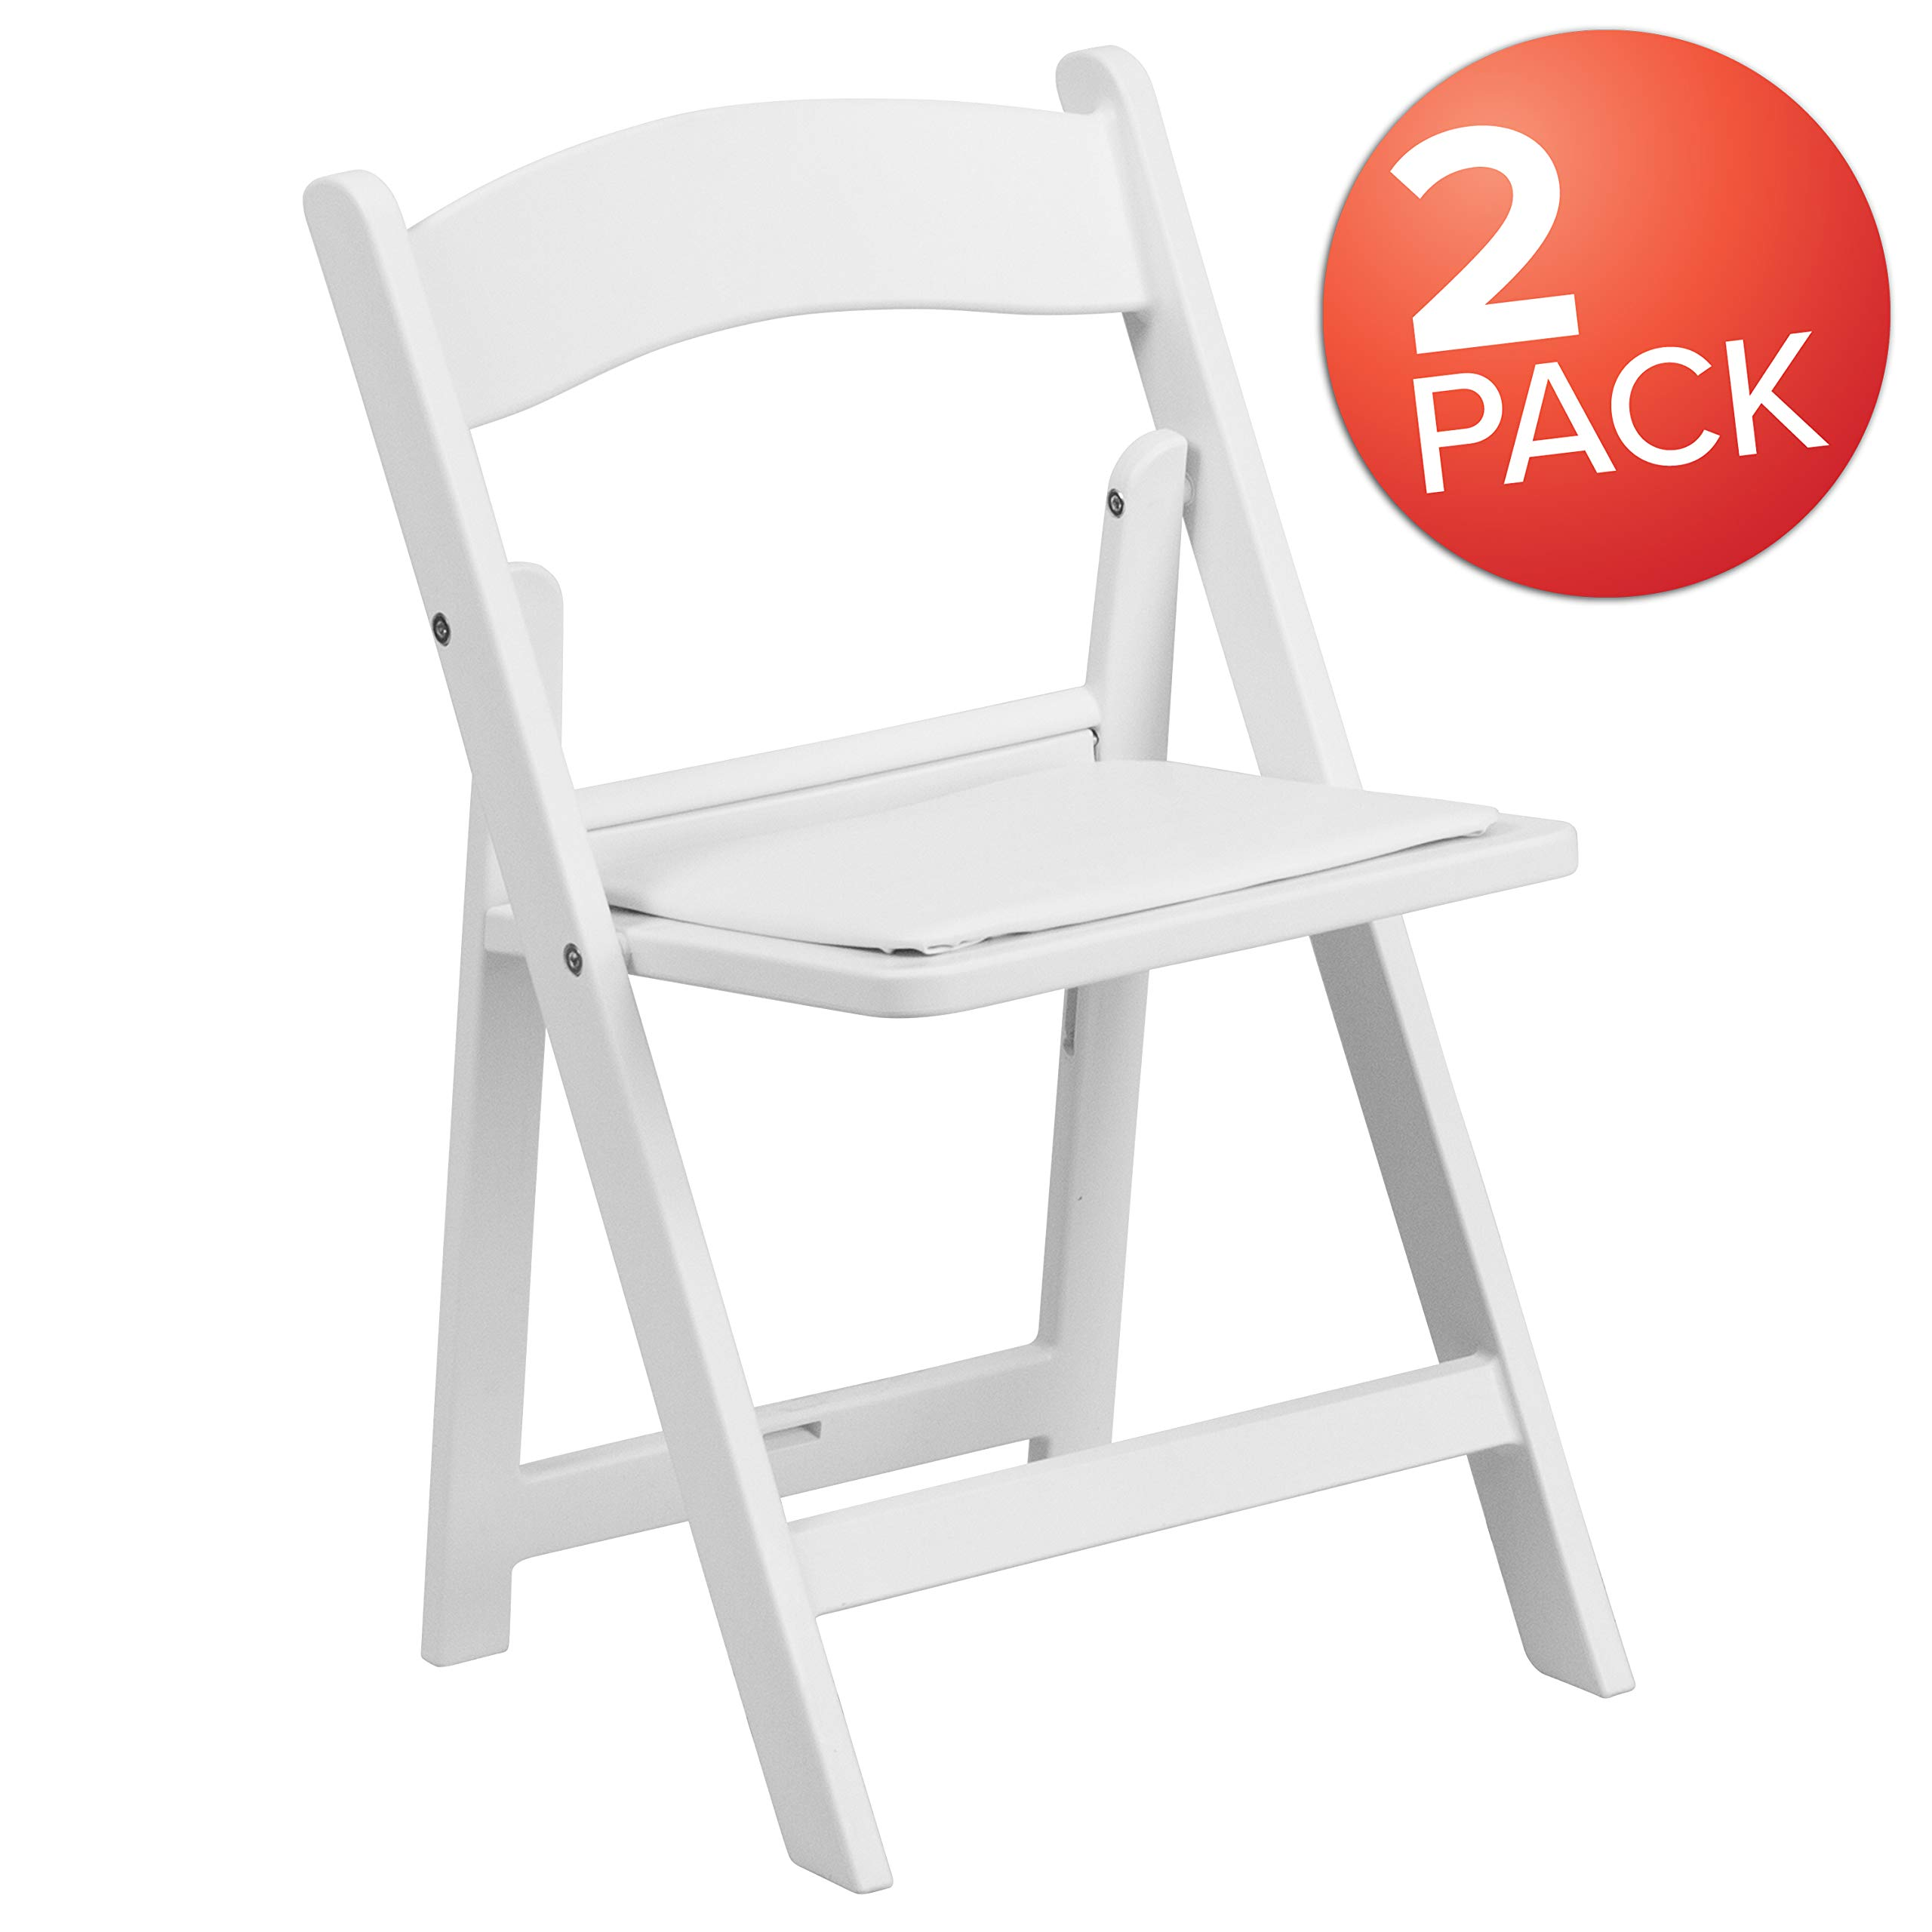 Flash Furniture Kids Folding Chairs with Padded Seats | Set of 2 White Resin Folding Chair with Vinyl Padded Seat for Kids by Flash Furniture